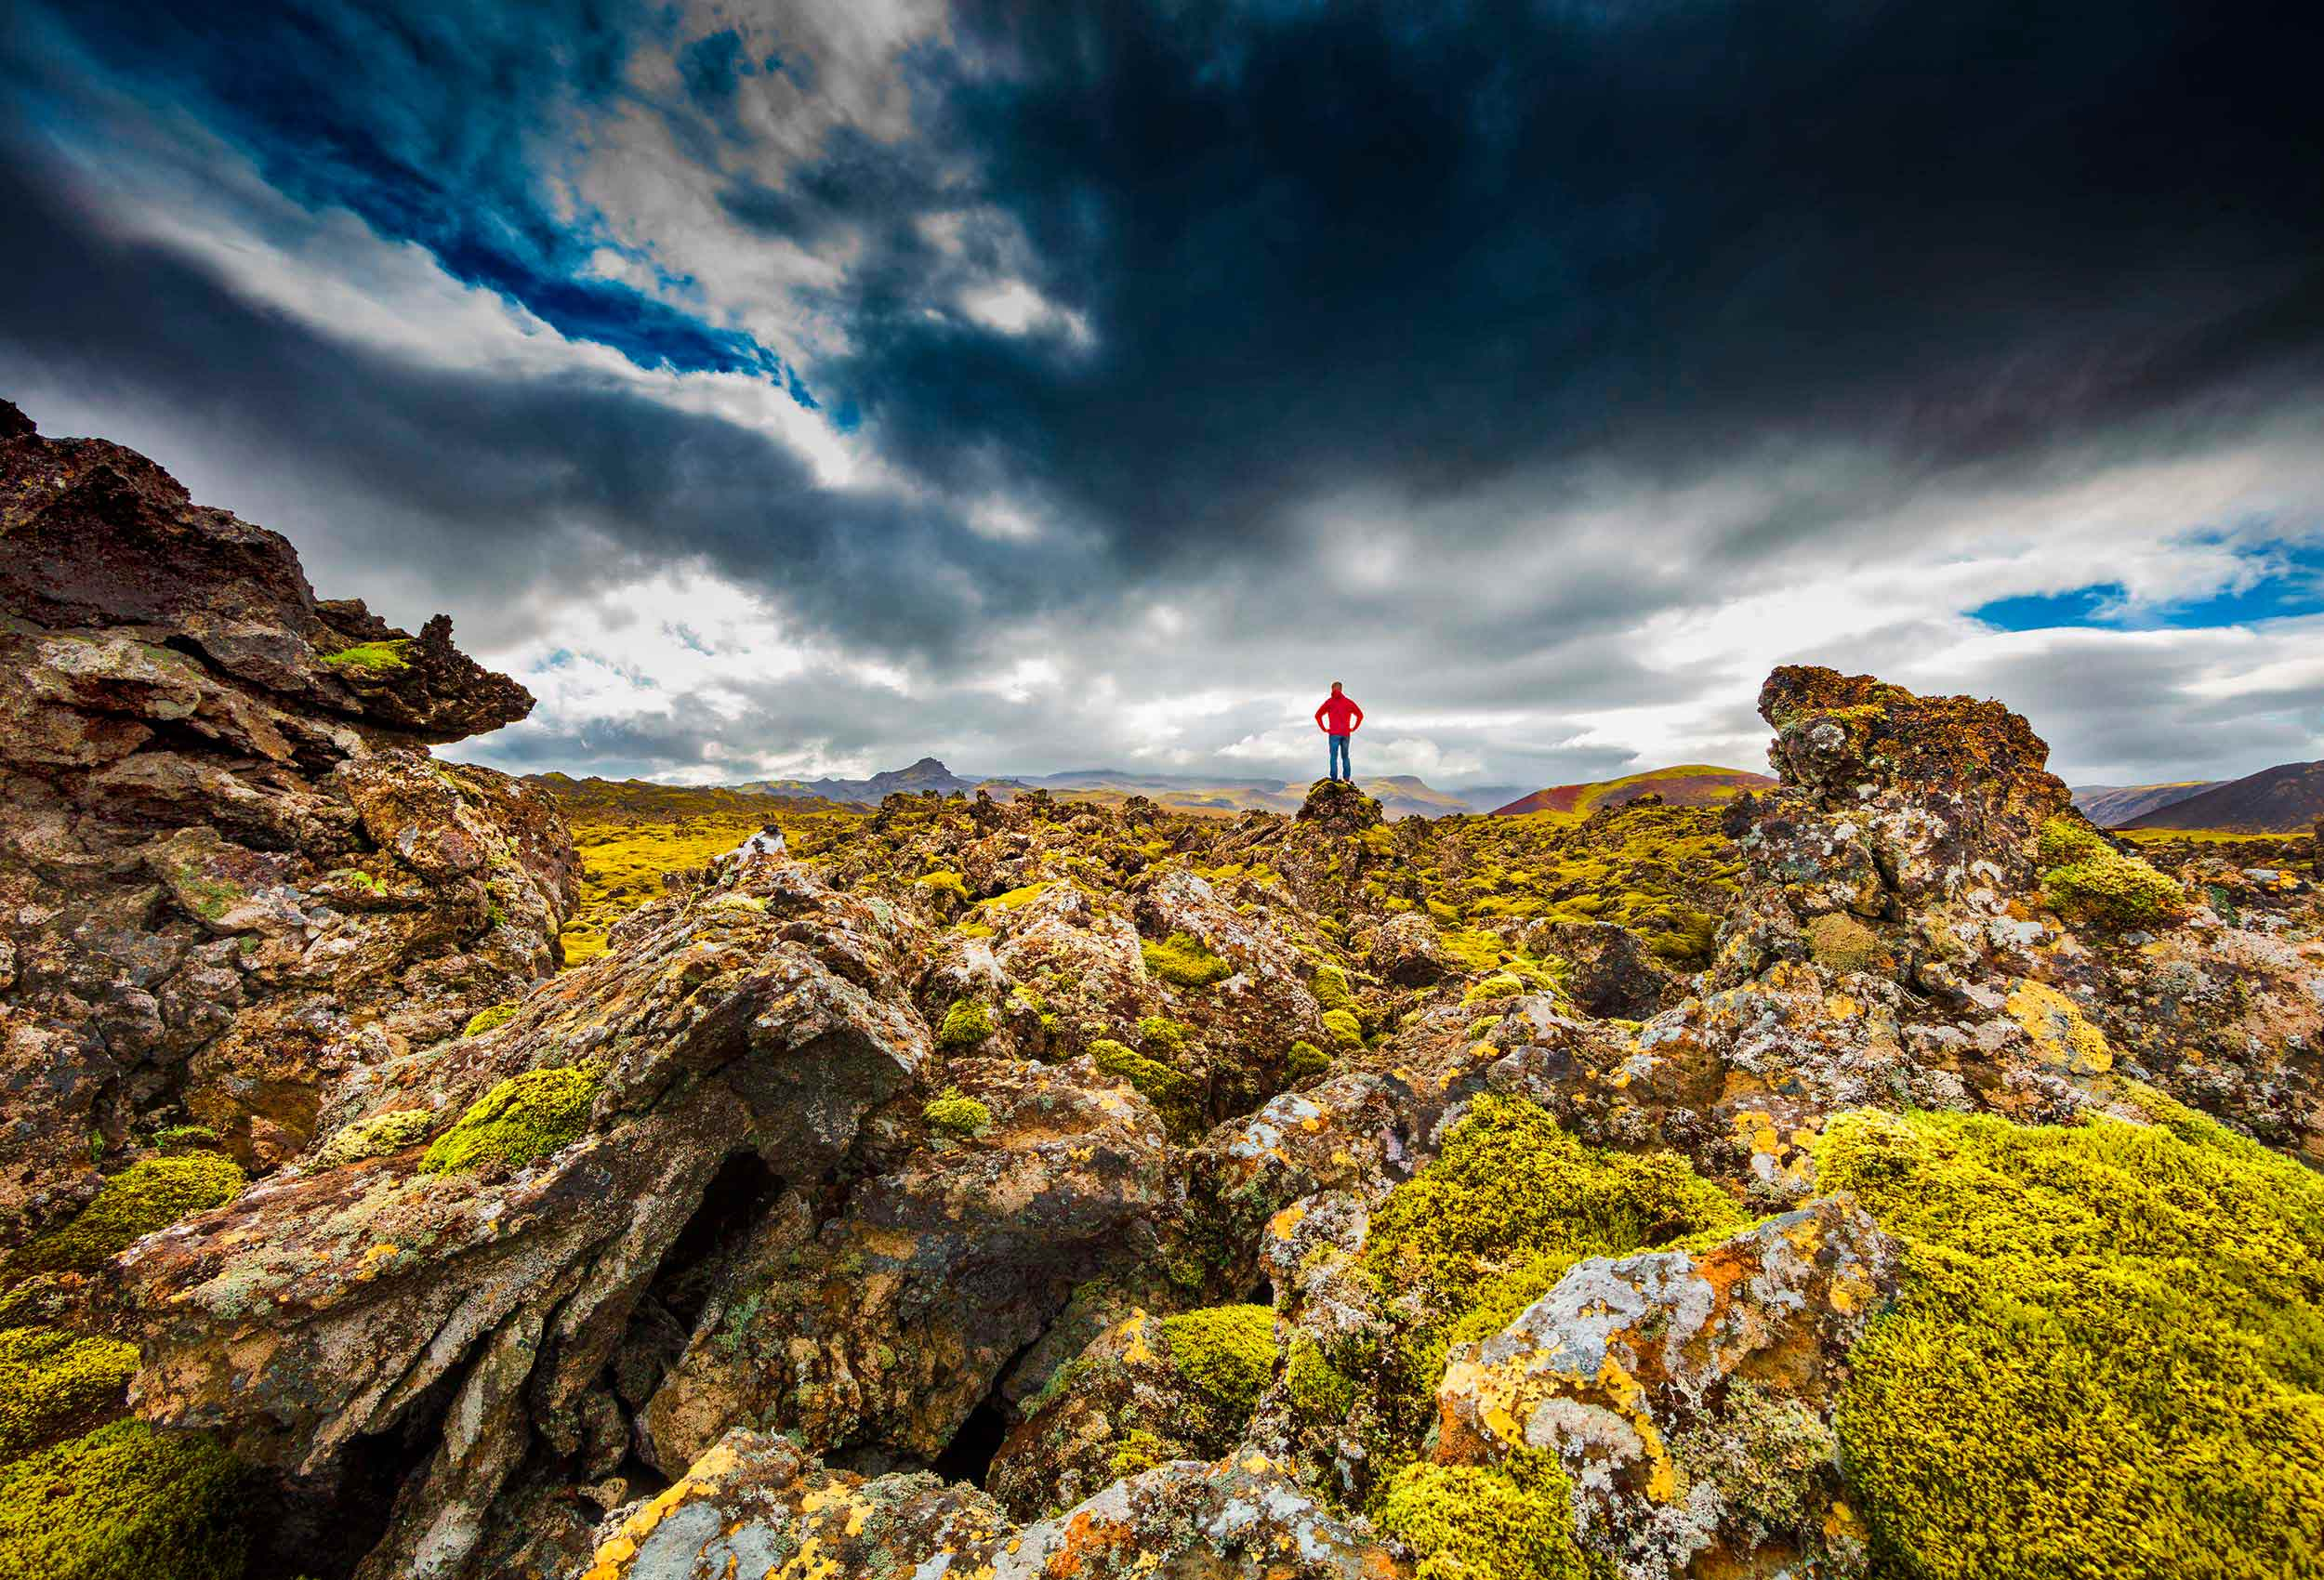 green moss covered lava fields with a man on top of them in Iceland by amazing travel photographer John Hryniuk